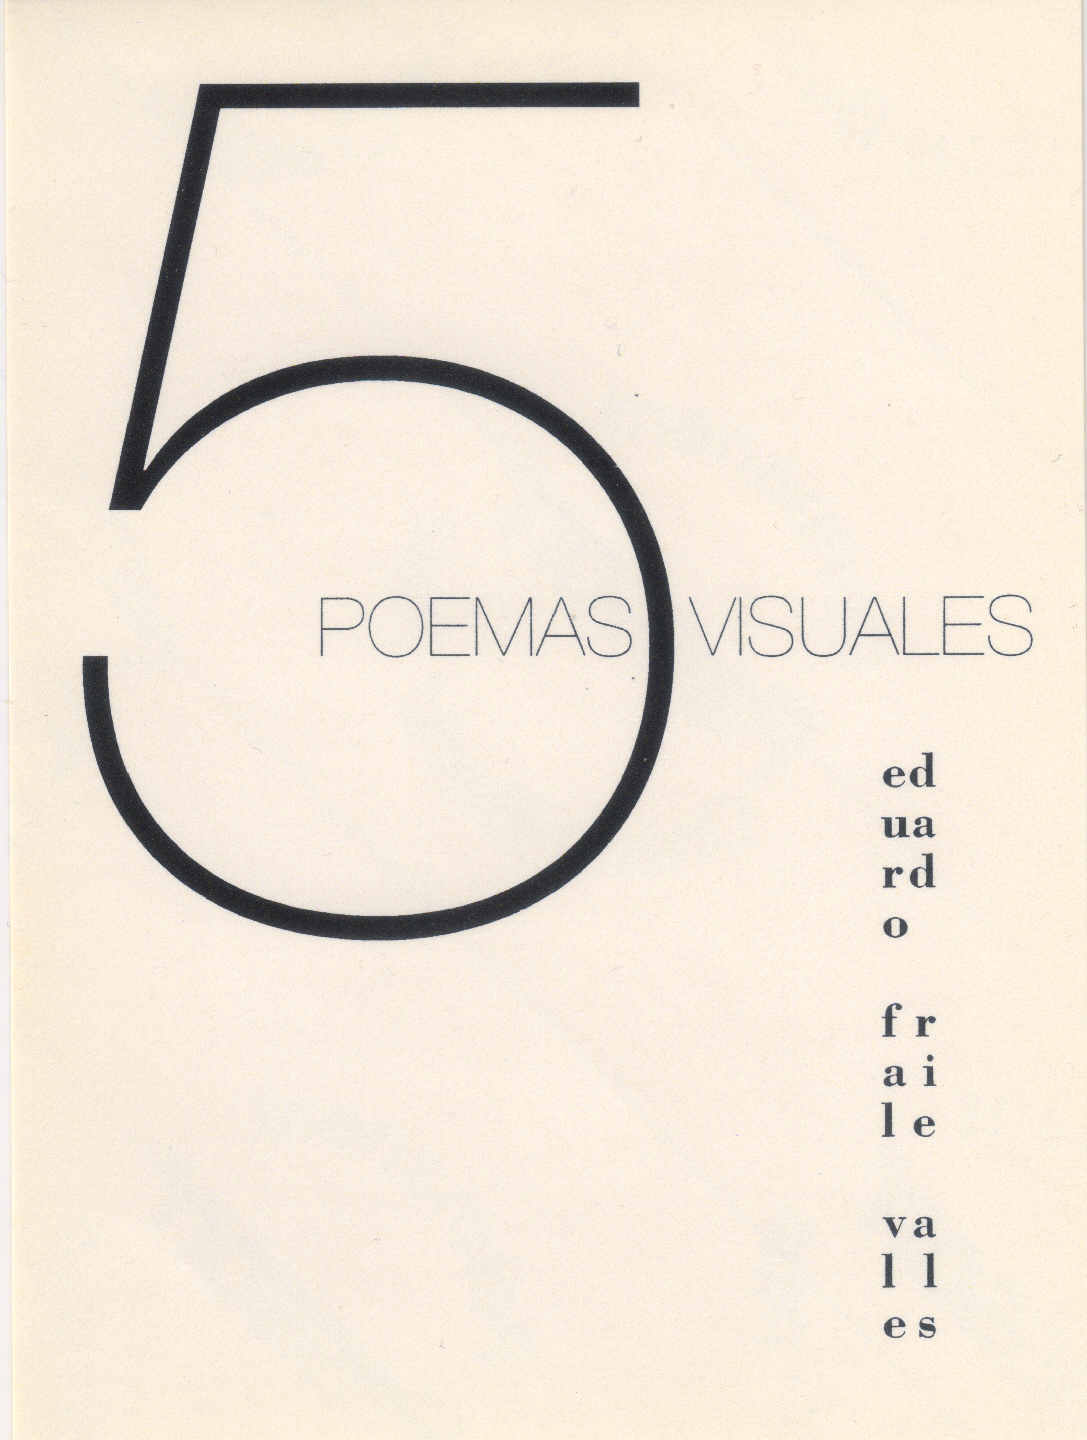 5 poemas visuales